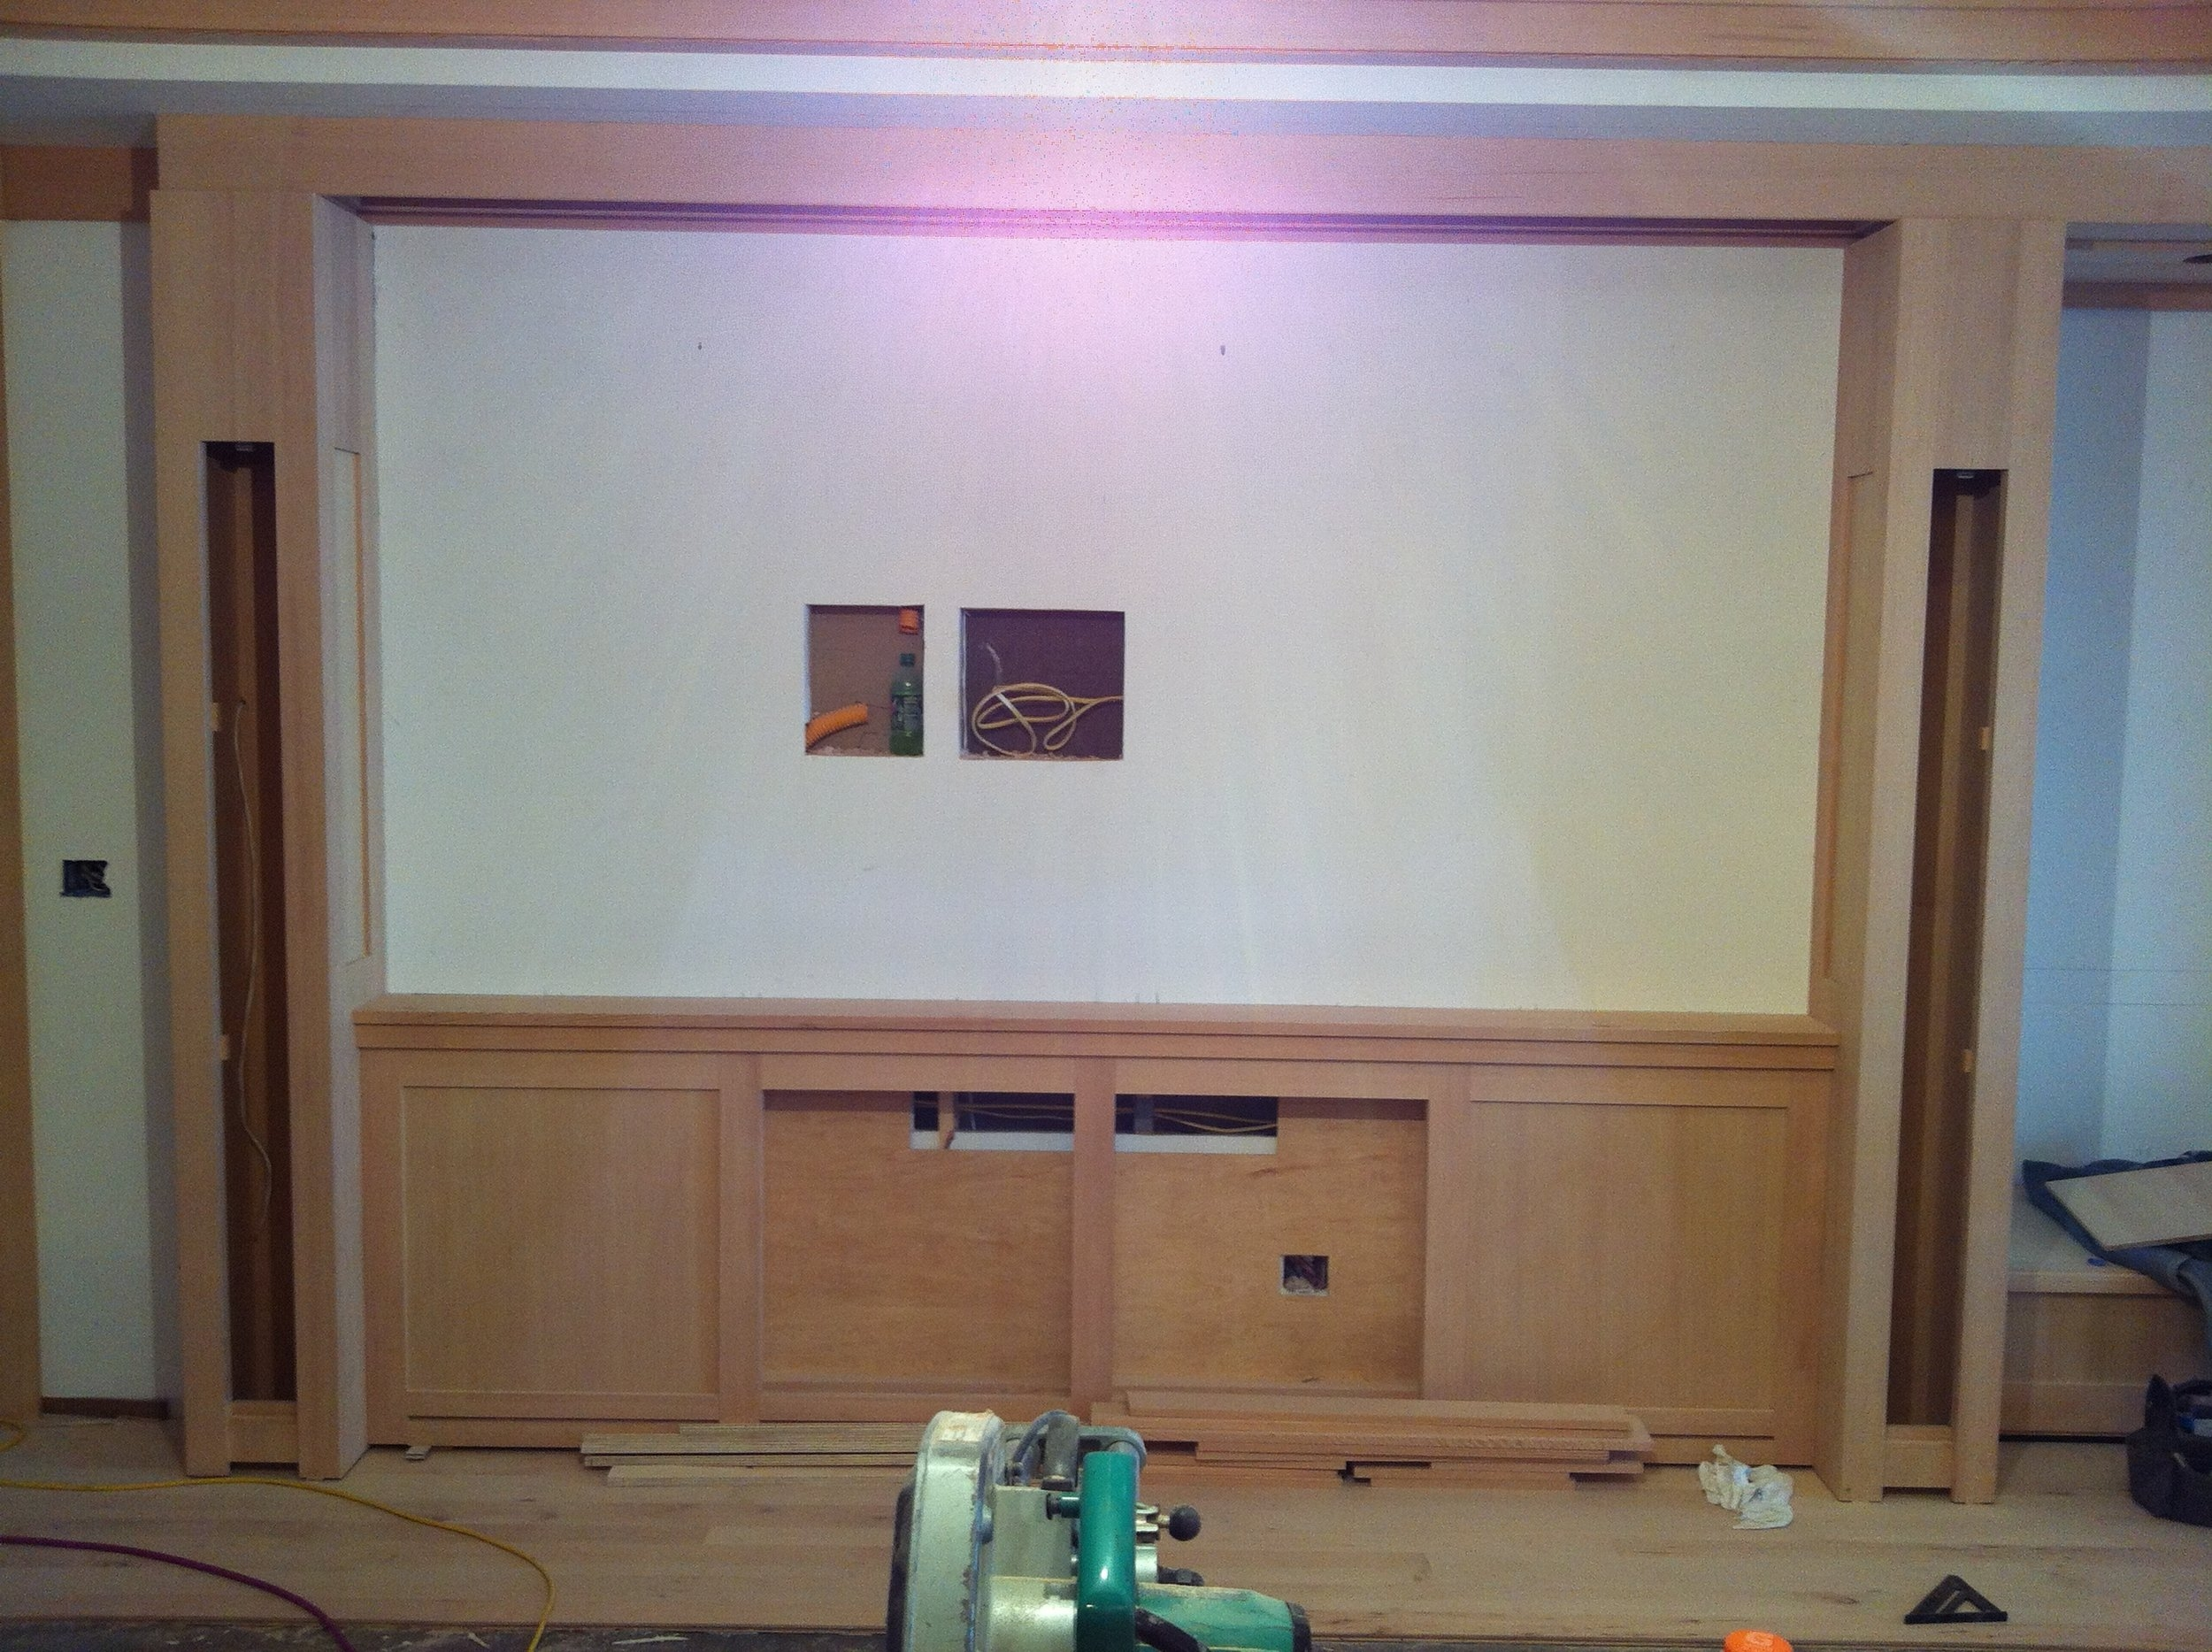 Cabinets built to conceal high-performance audio